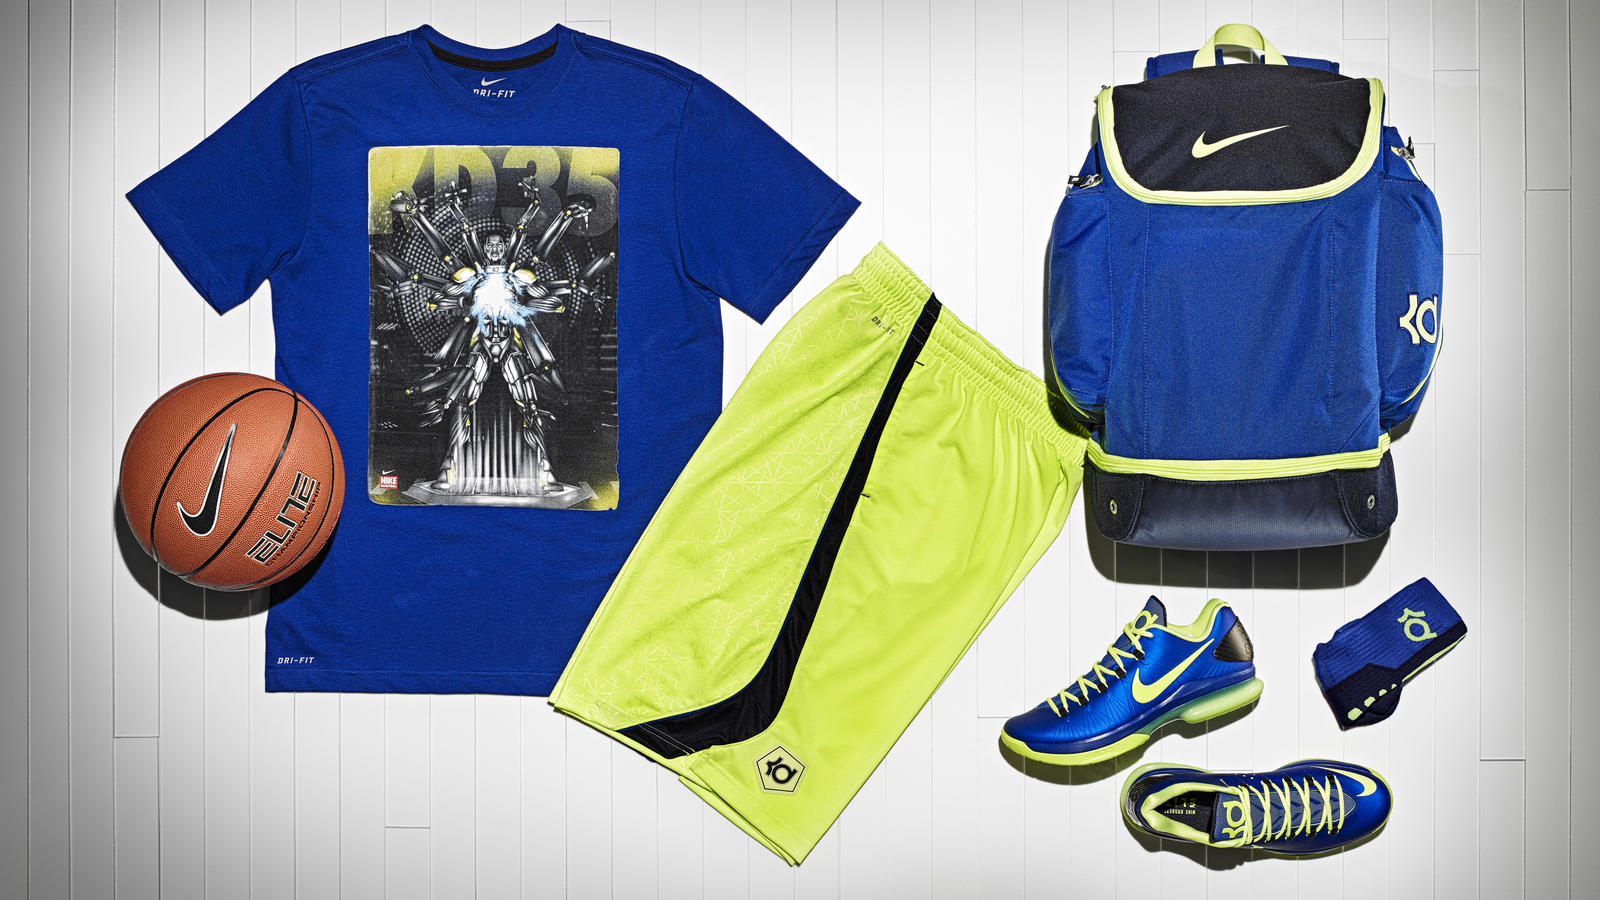 13-190_nike_kd_gear_up_group-01